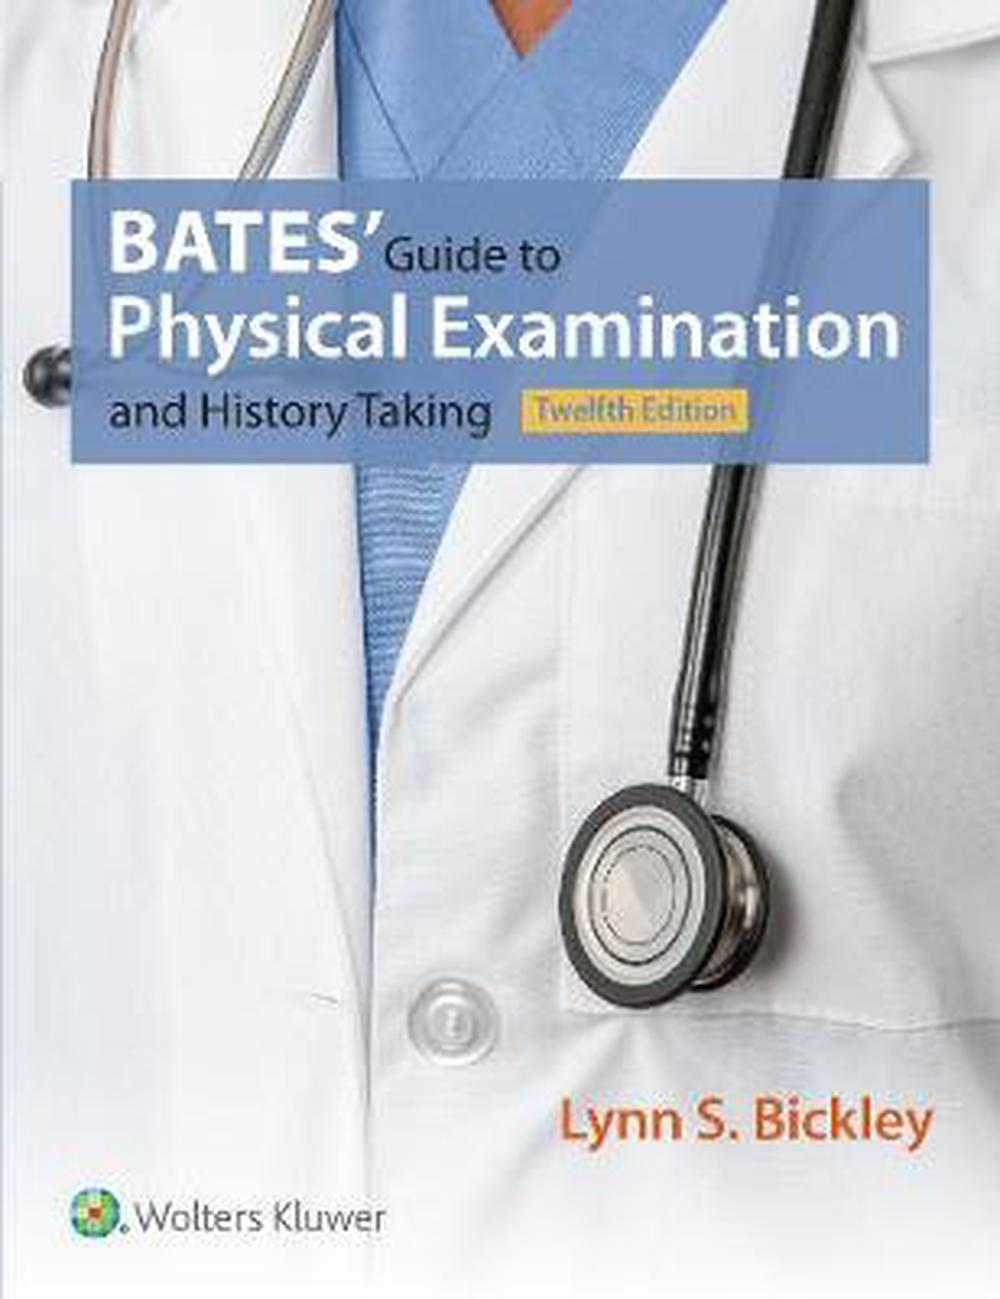 Bate's Guide to Physical Examination and History Taking, 12th Edition